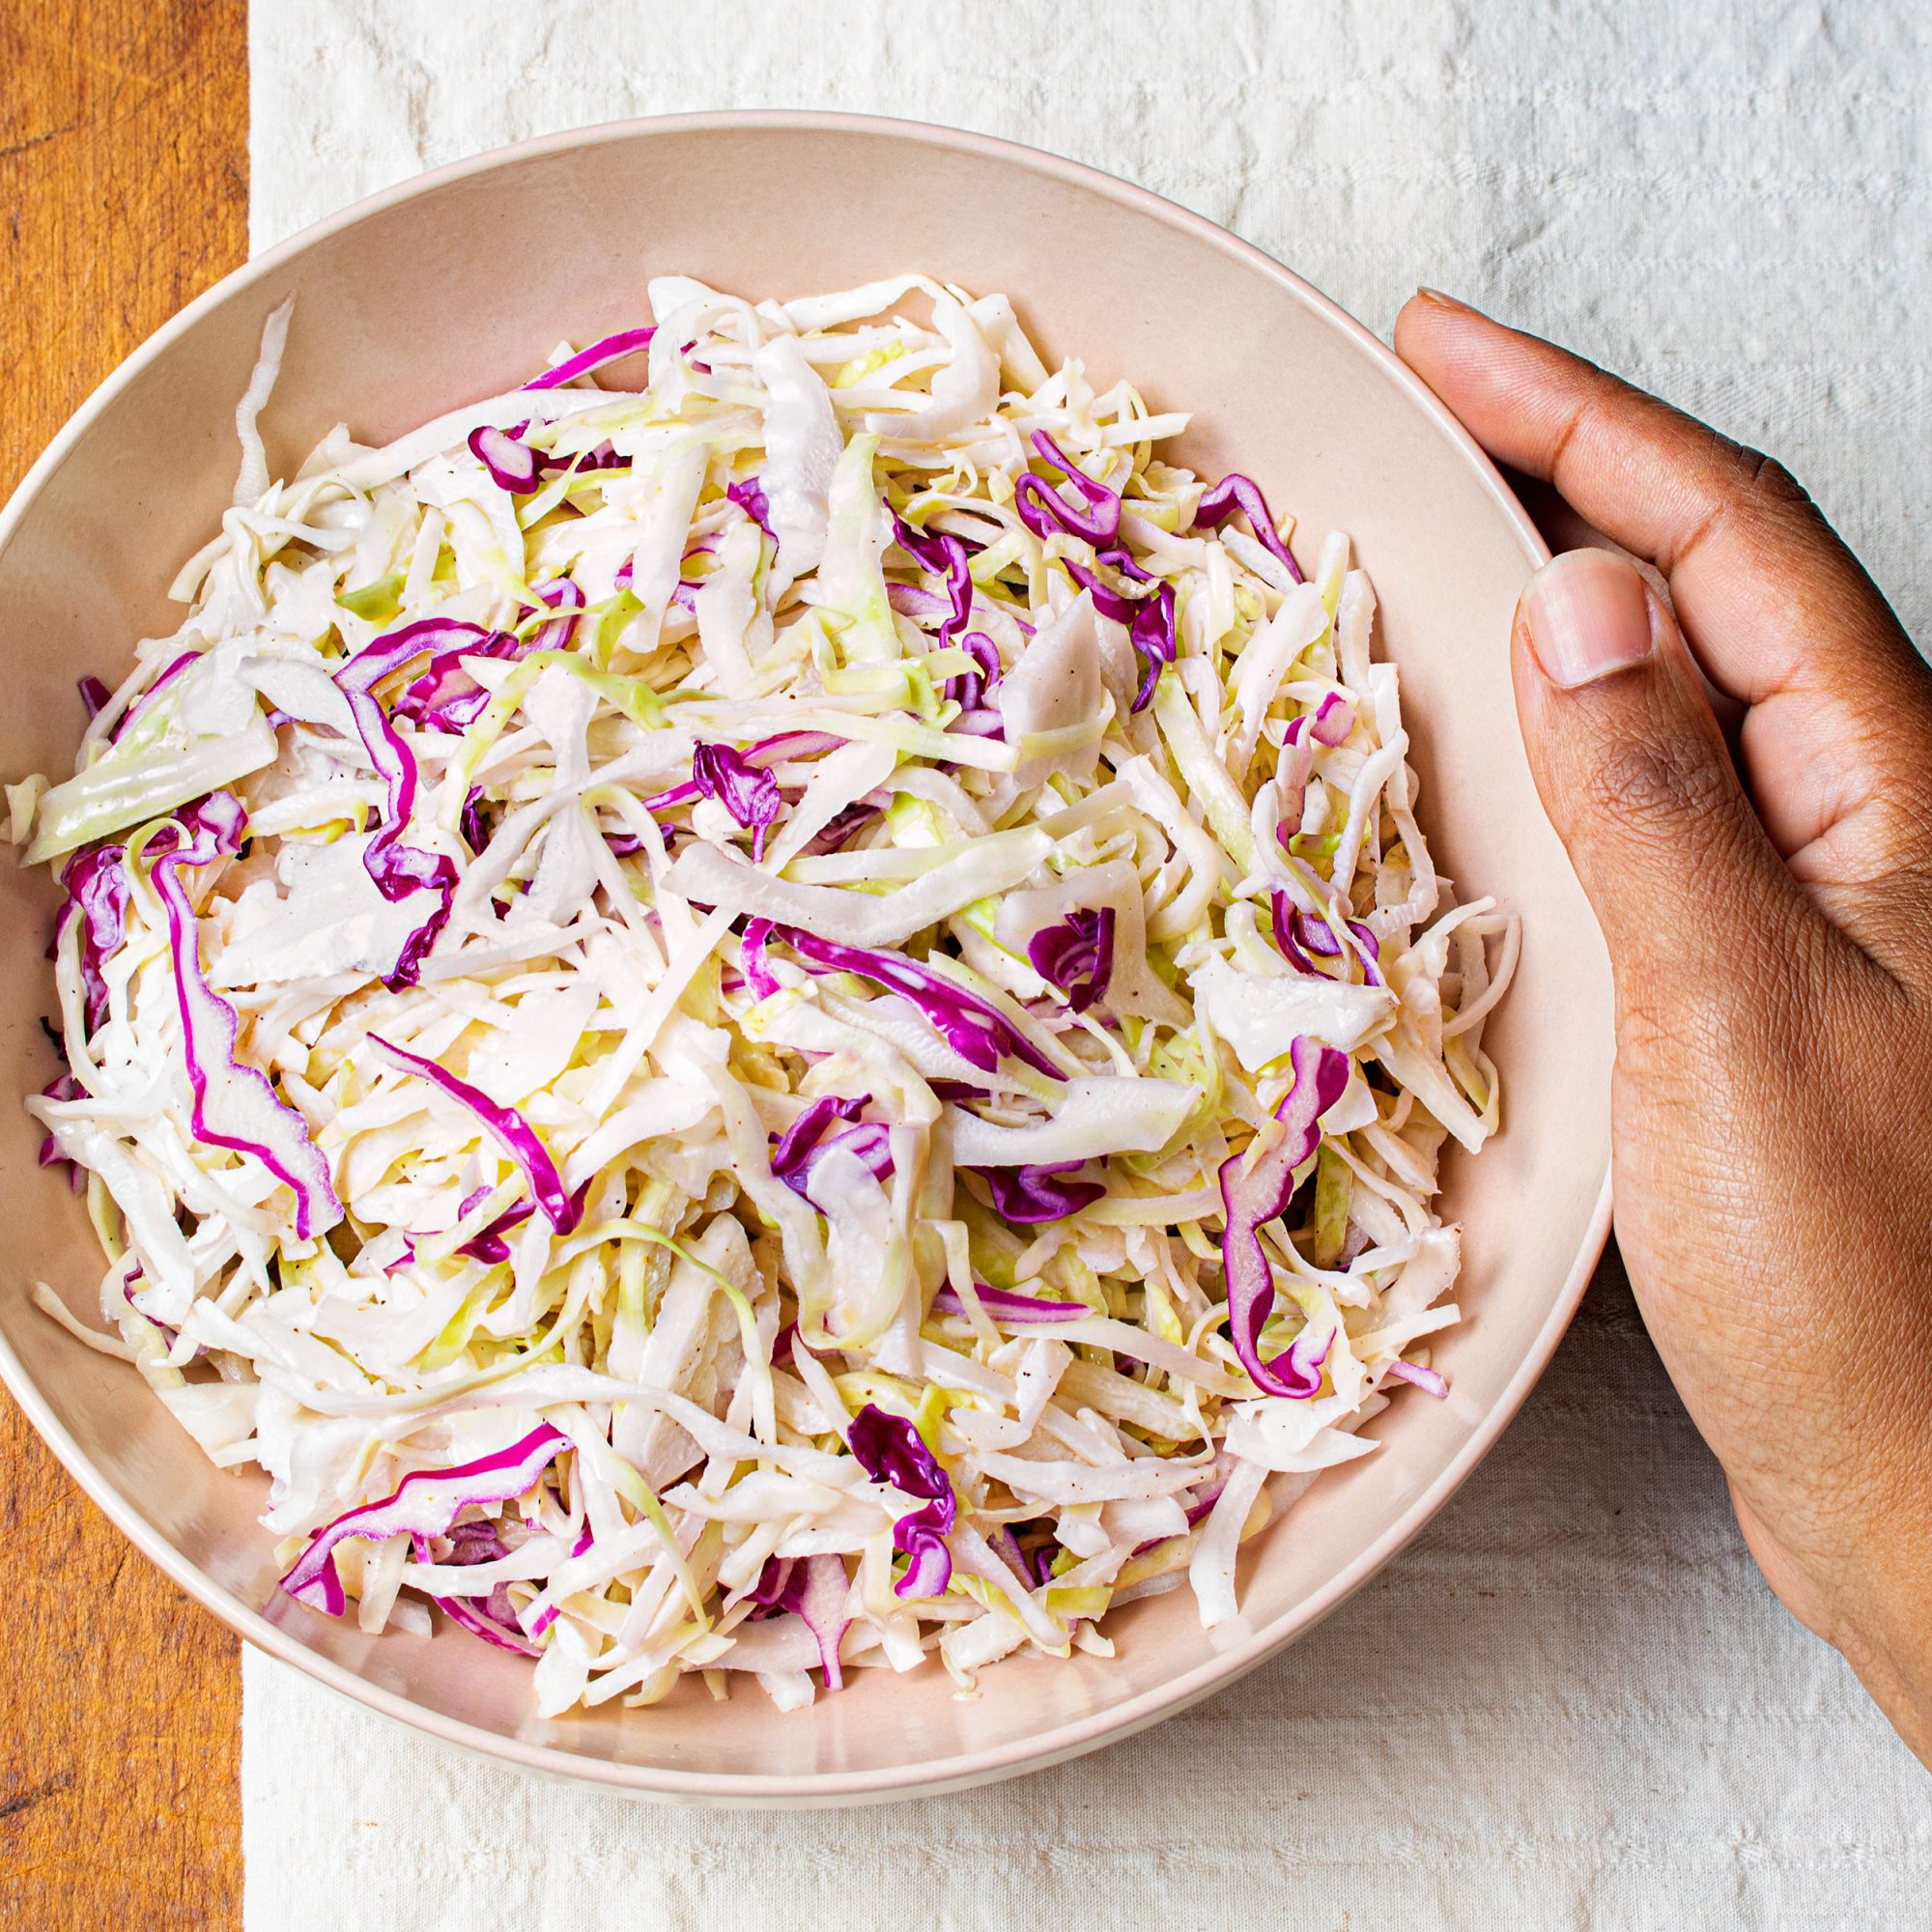 creamy coleslaw in a beige bowl with hand